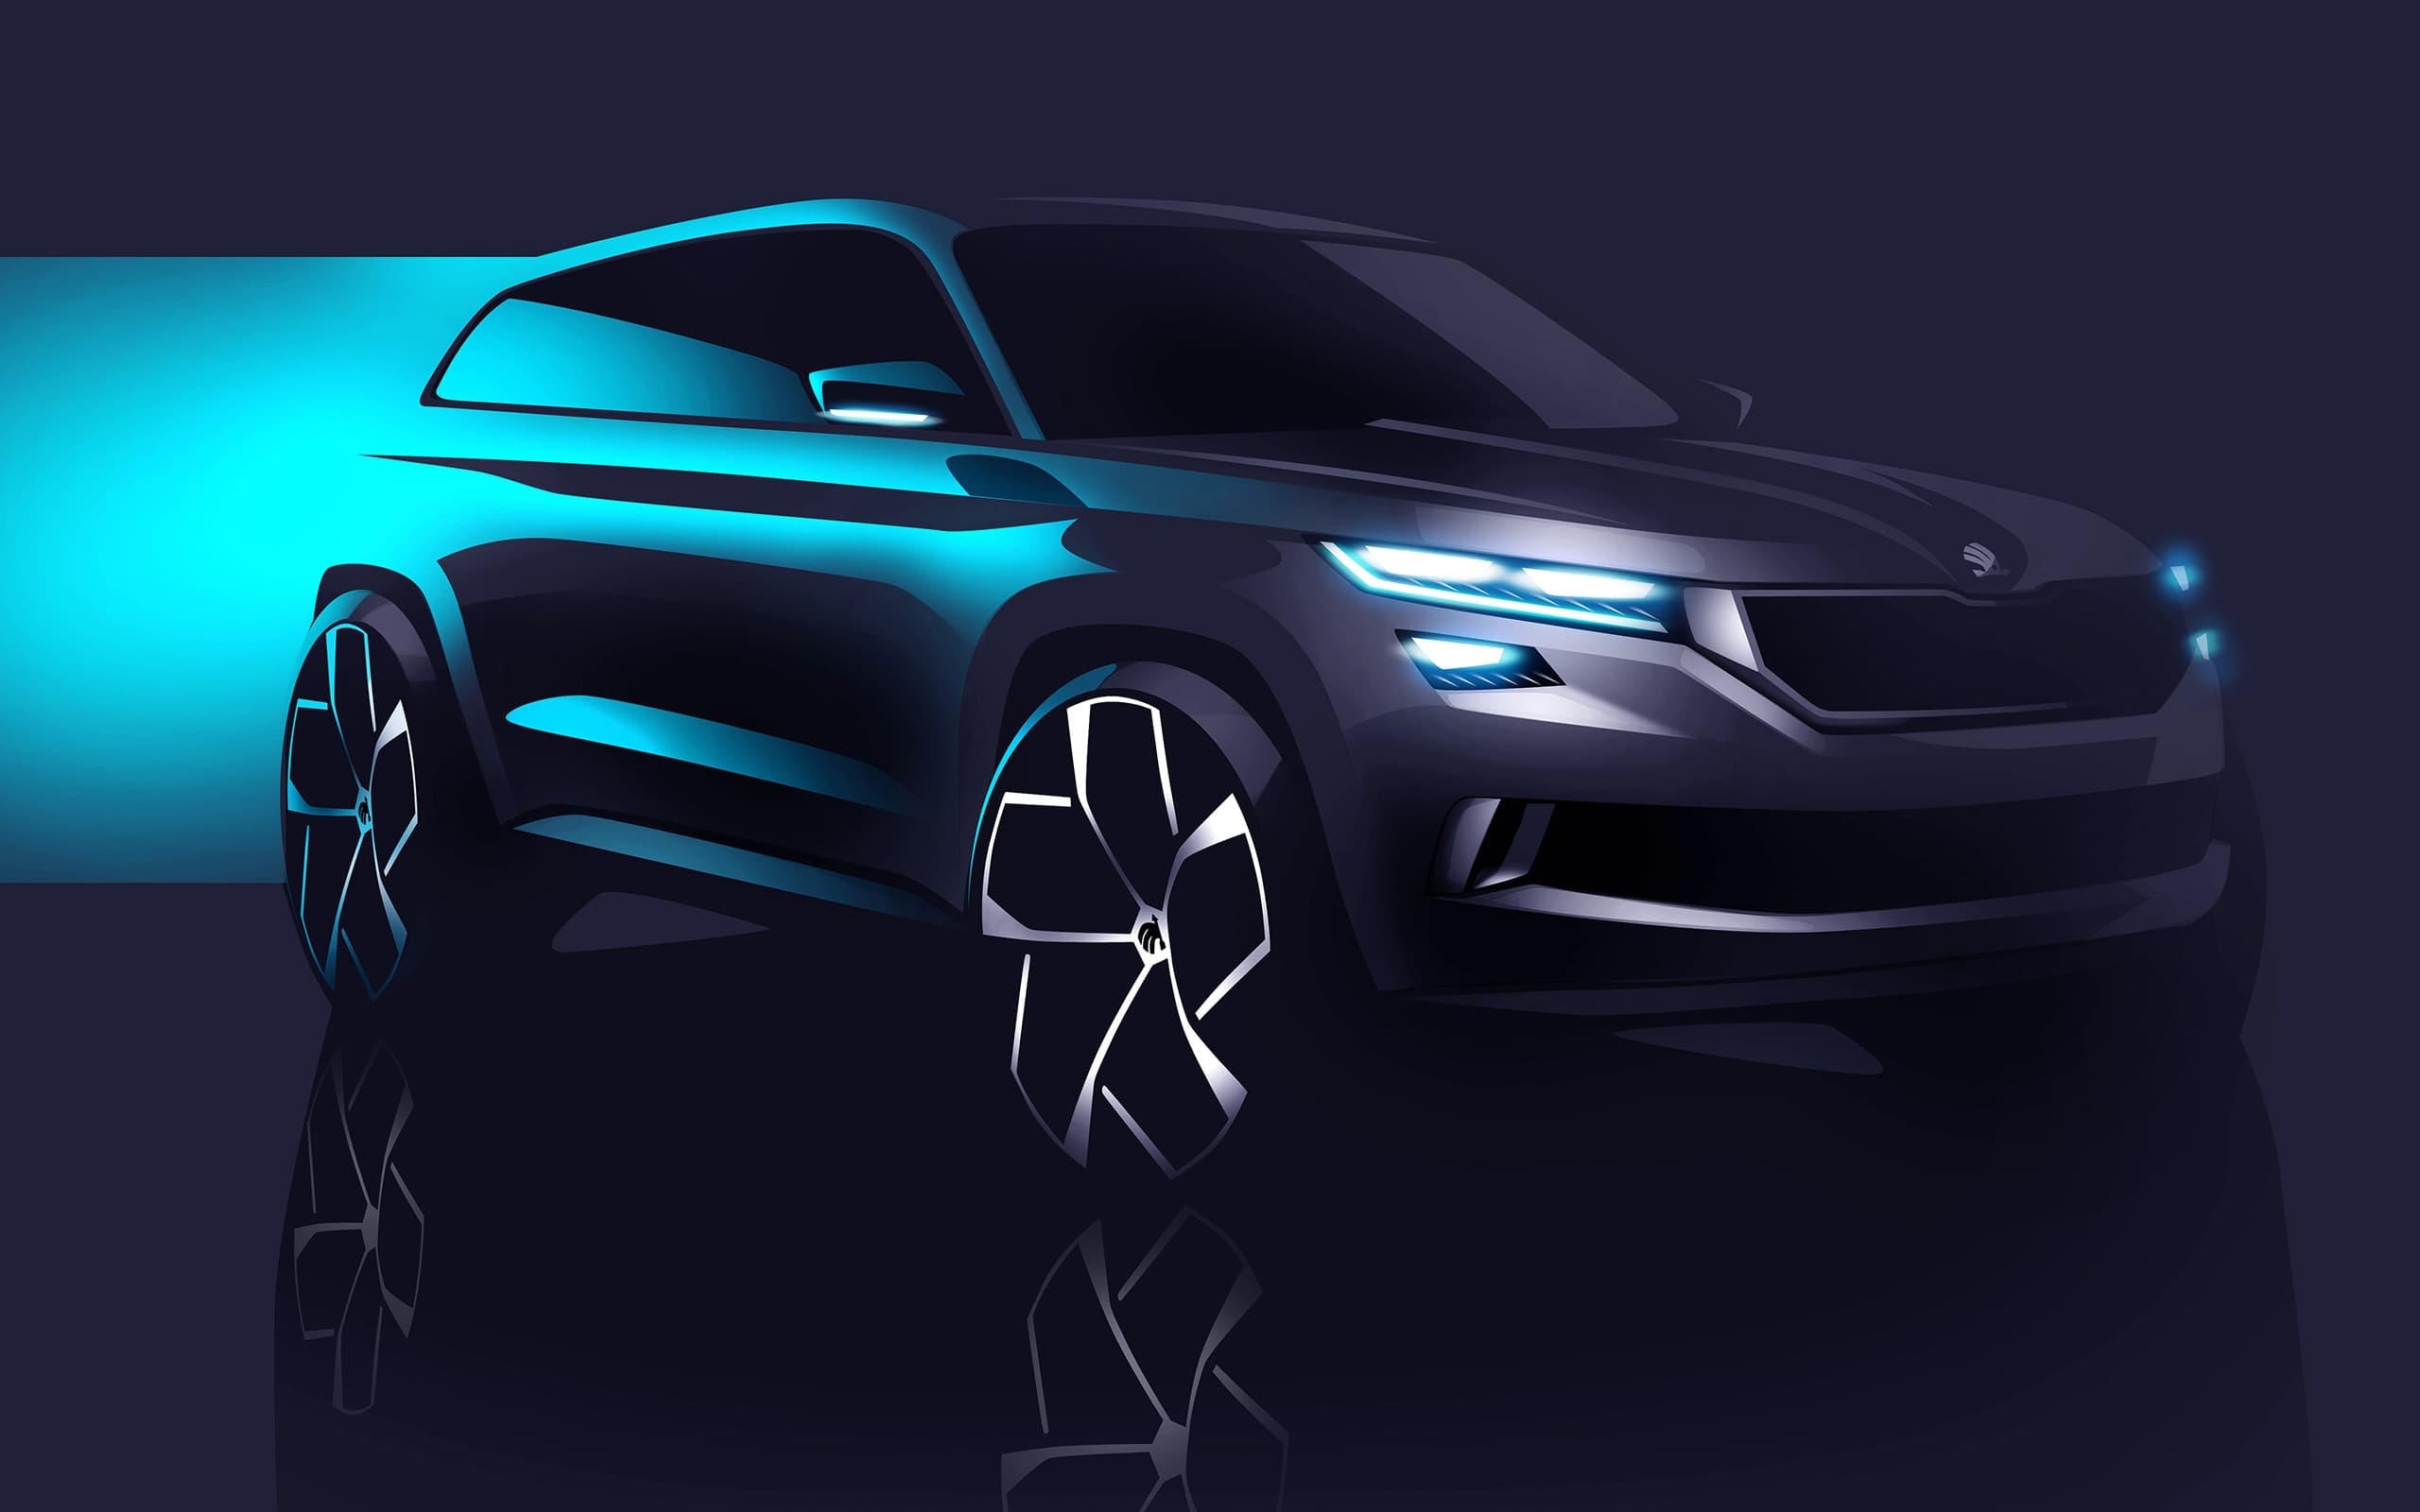 2016 Skoda Vision S Concept Headlight Wallpaper HD Blue